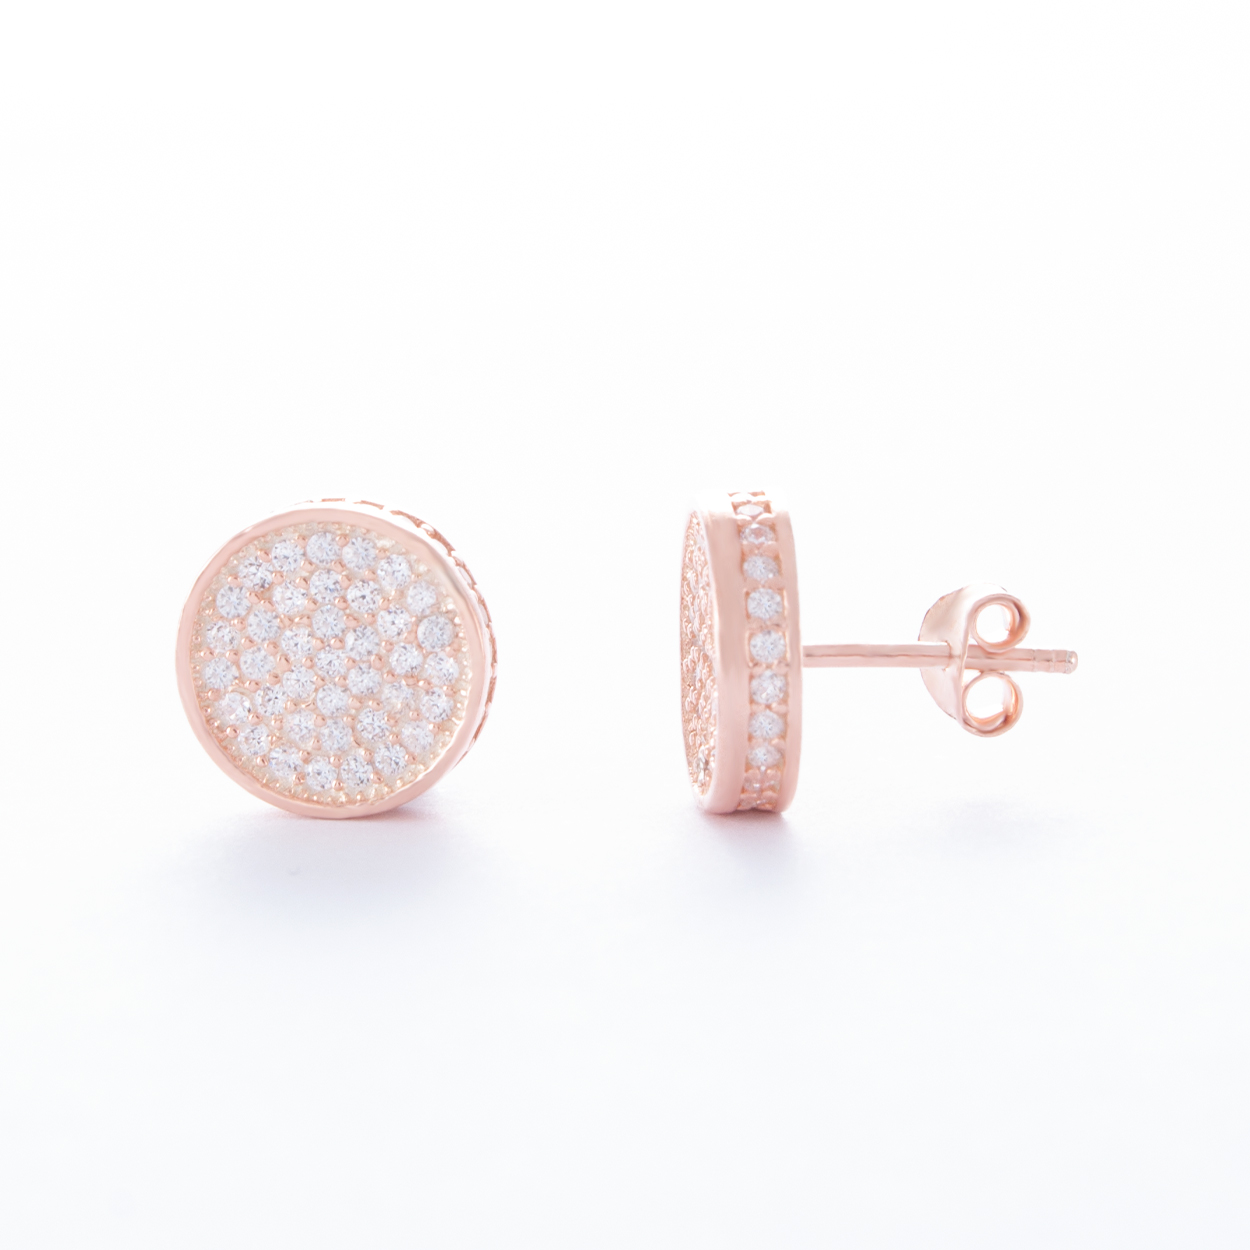 Circular-Rose-Gold-Cubic-Zirconia-Stud-Earrings